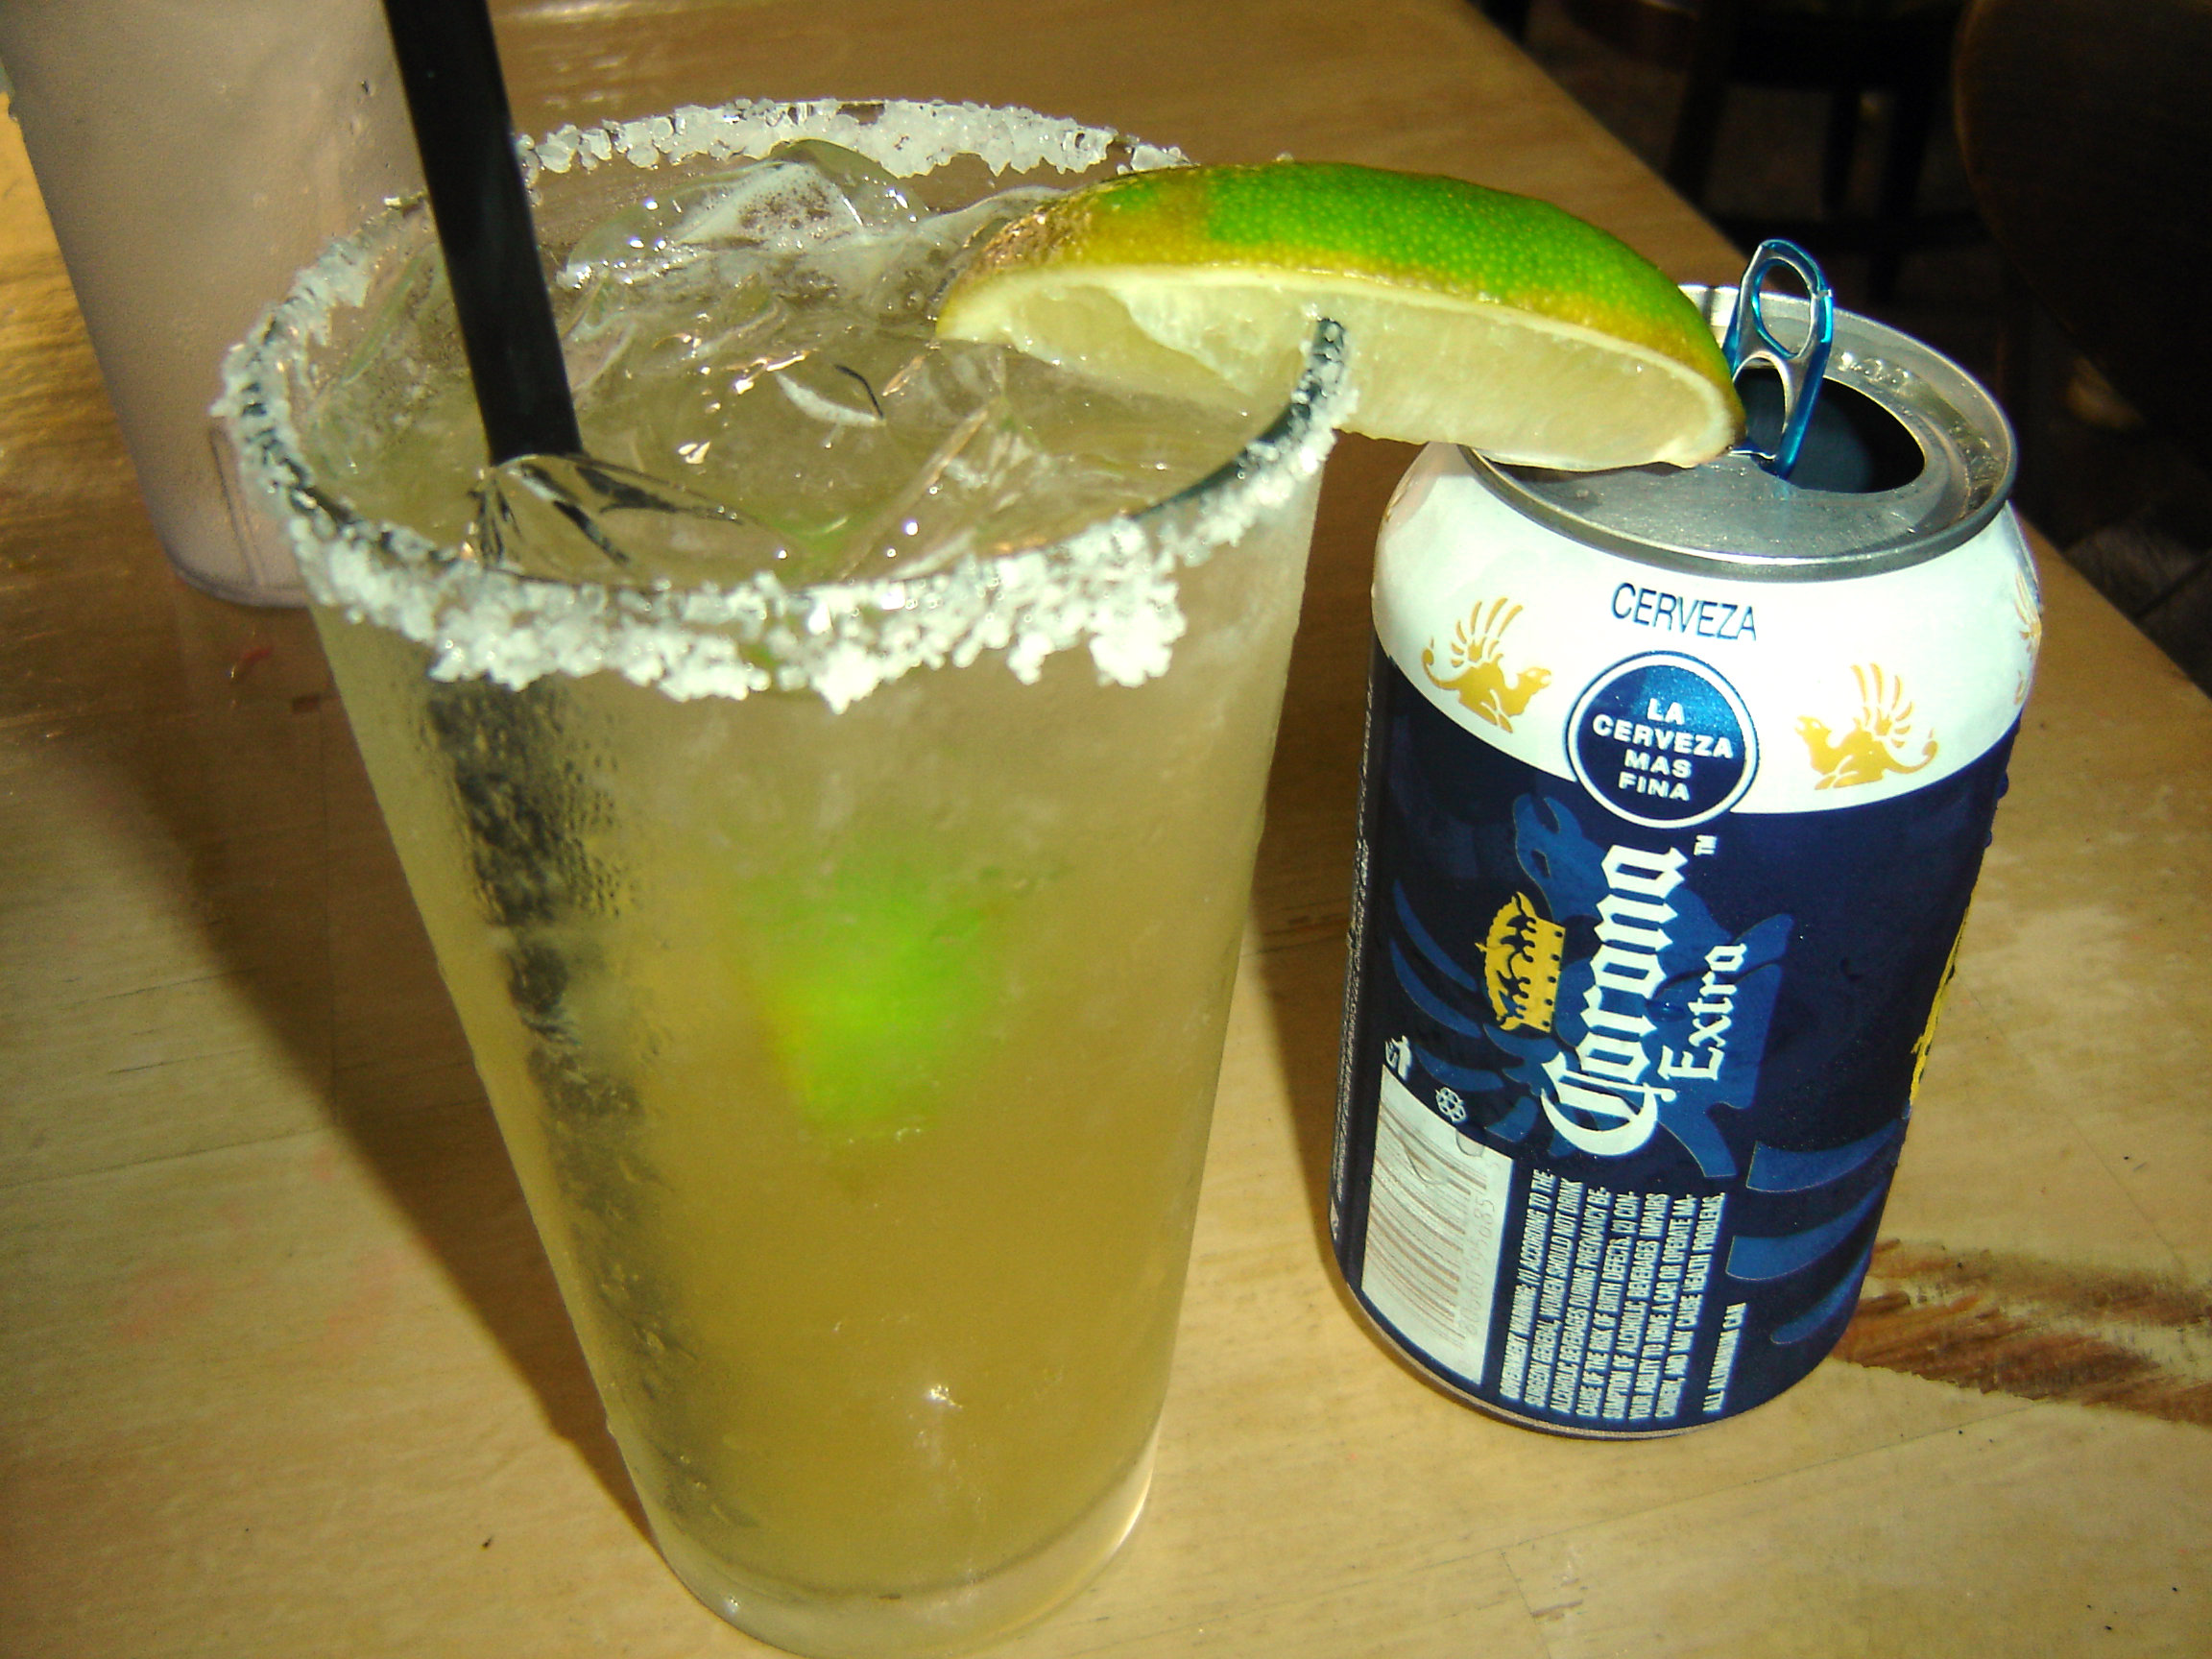 Across the Street, Coronarita